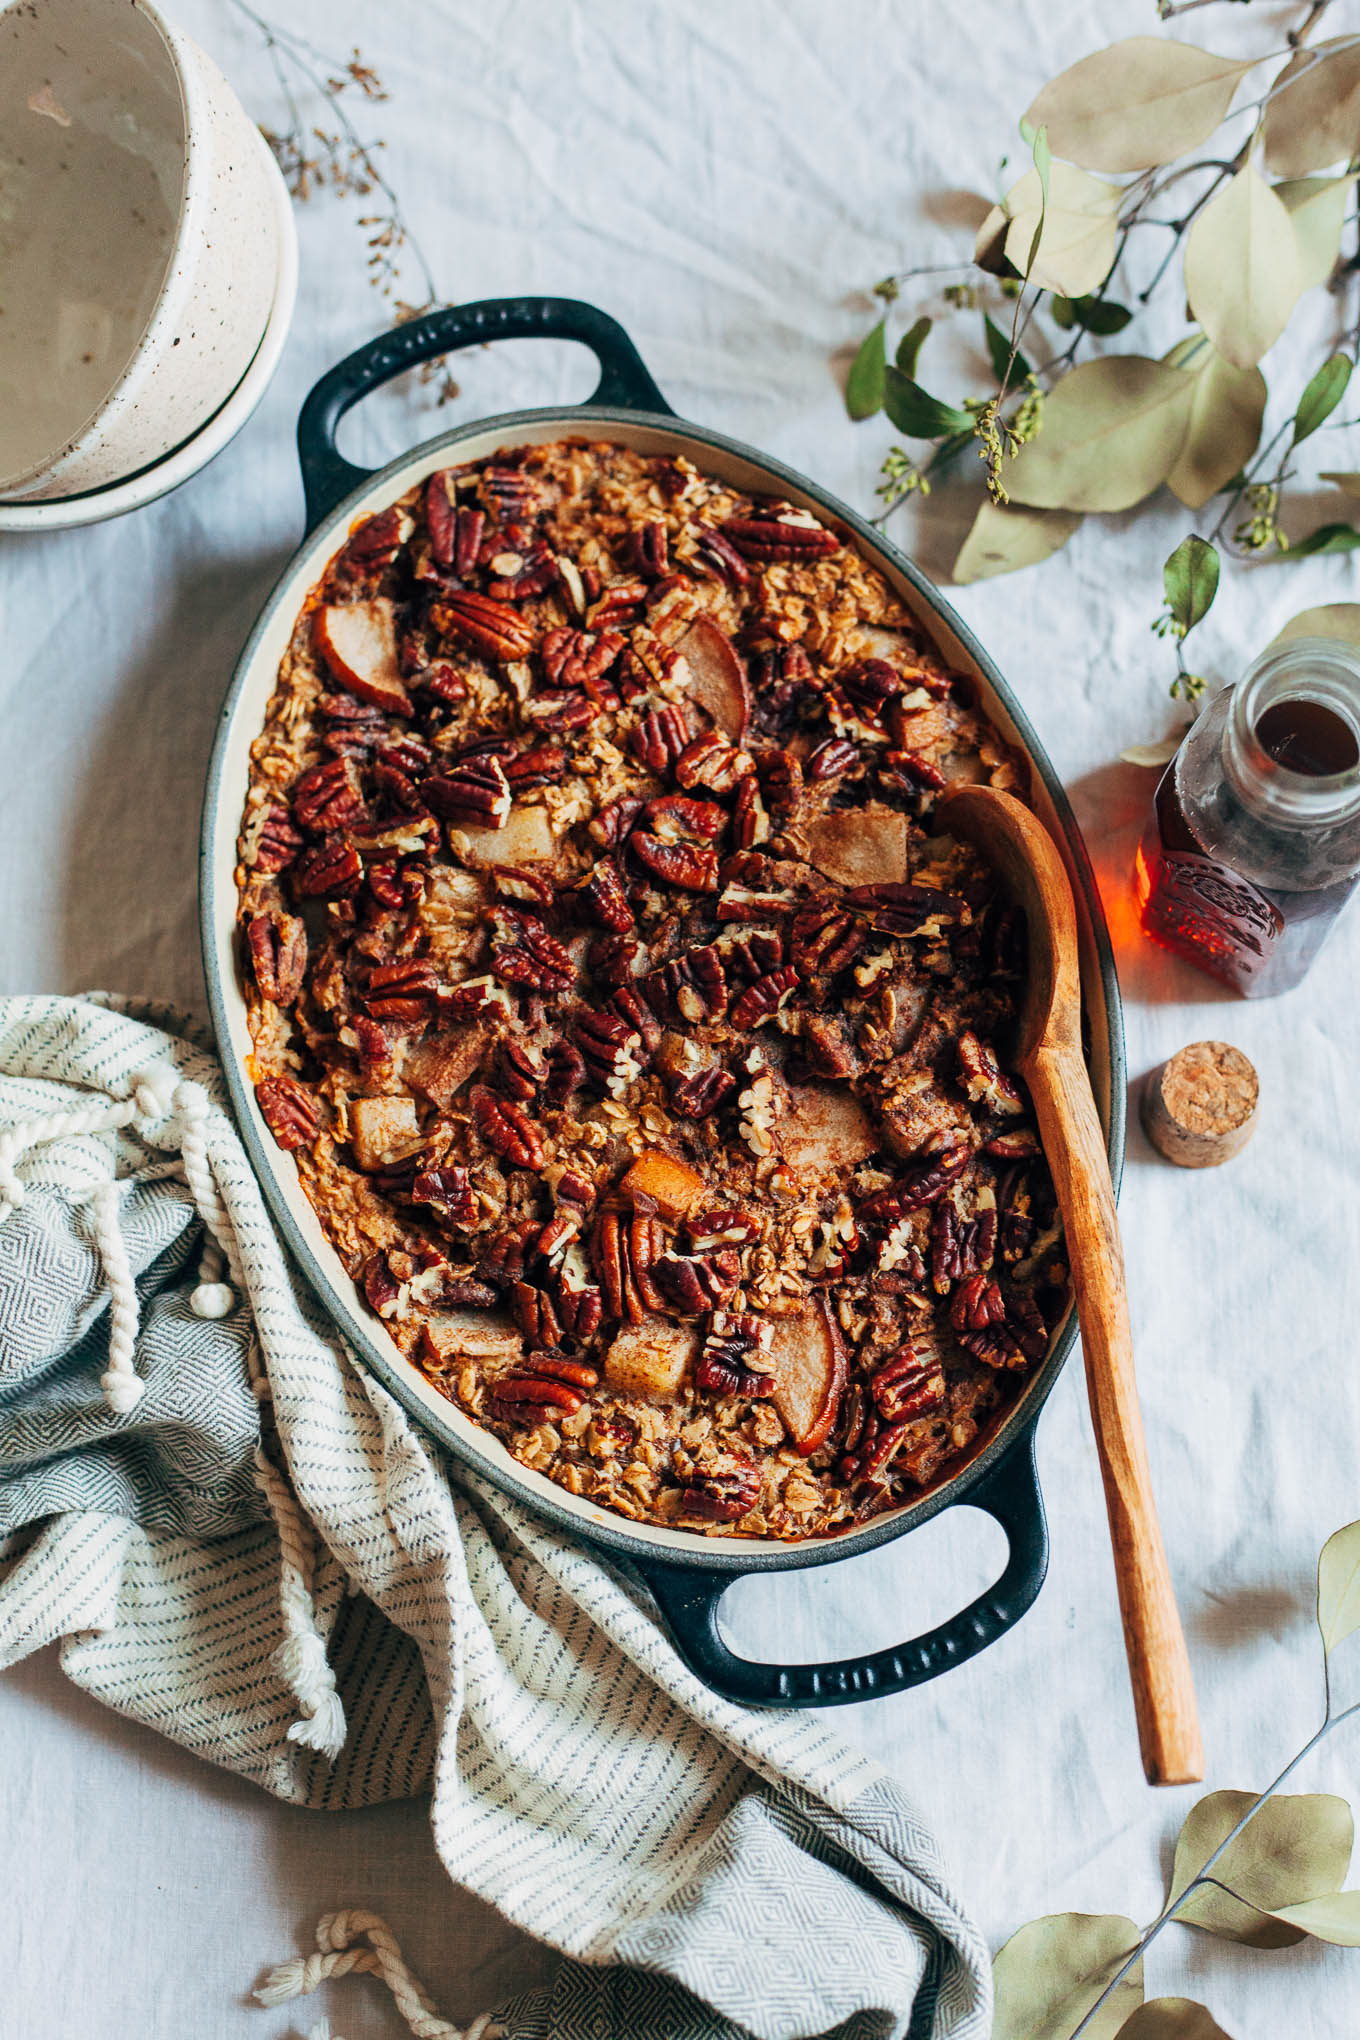 Overhead shot of an oval dish of speculaas spiced baked oatmeal.